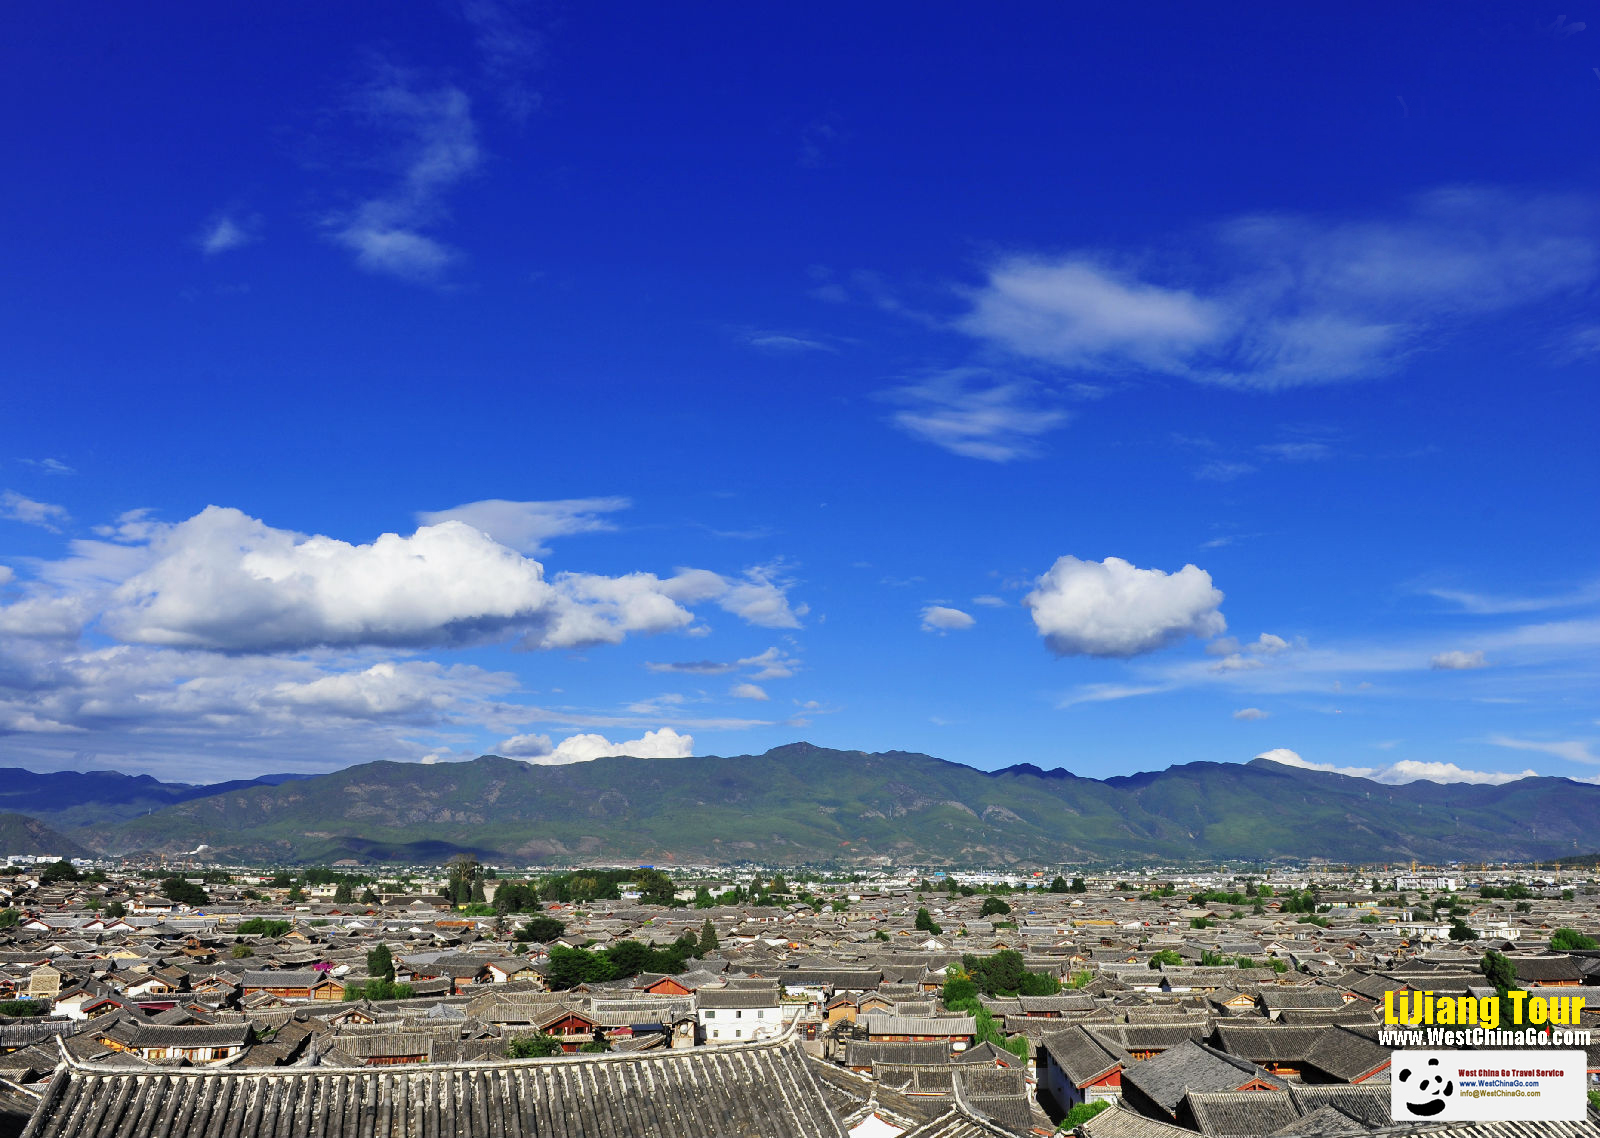 Lijiang Old Town tour